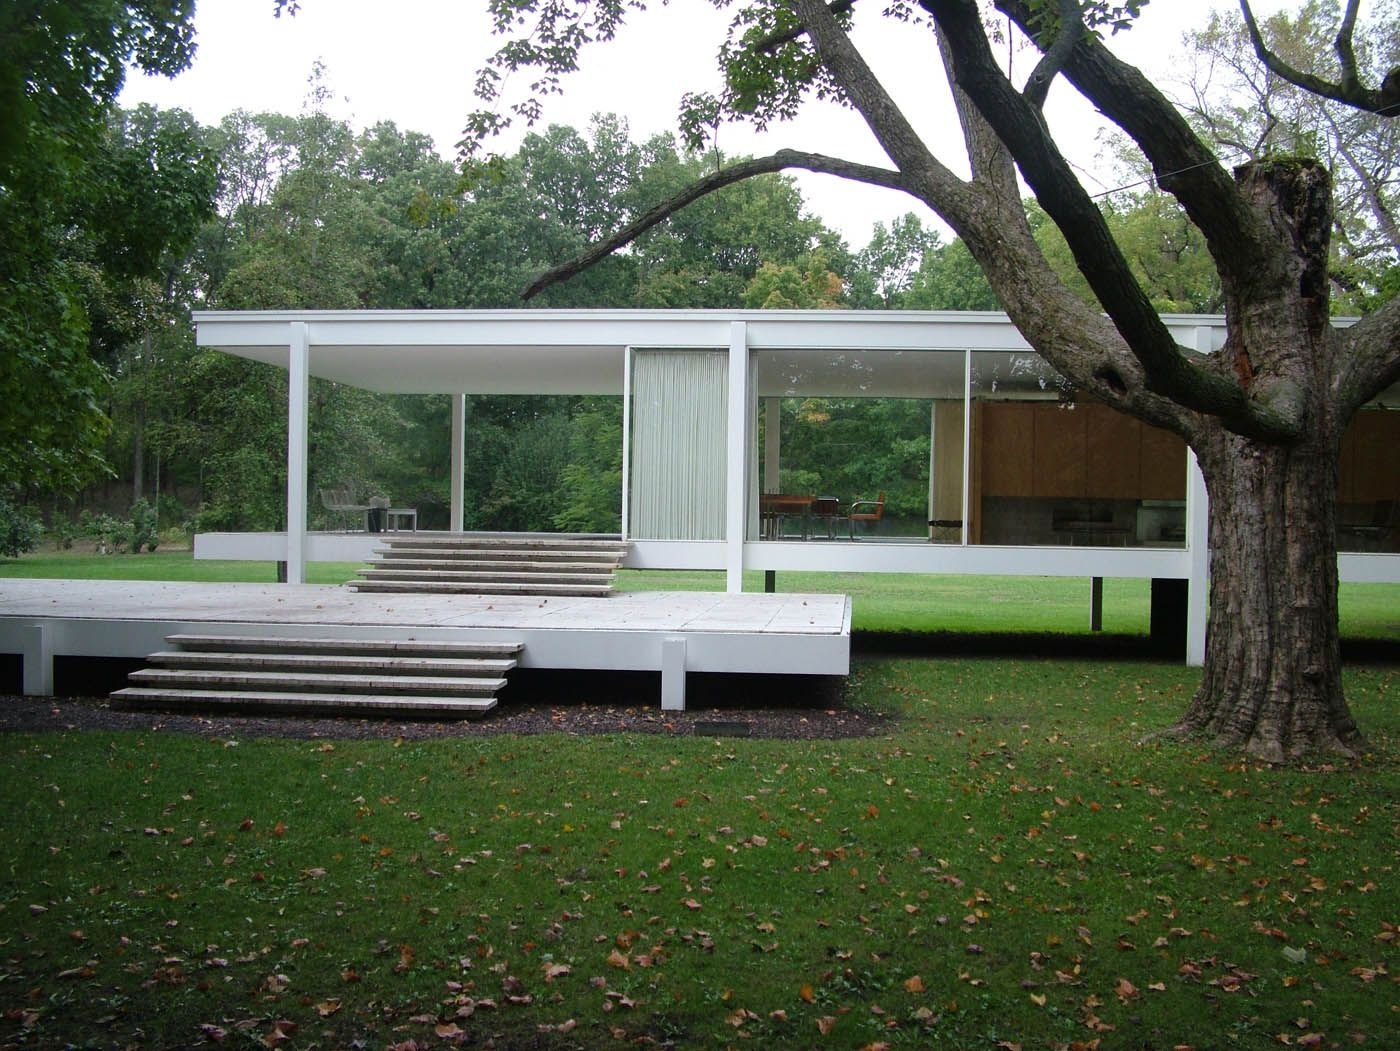 Mid century modern home exterior - Mid Century Modern Home Architecture Do You Have A New Home You Need To Furnish